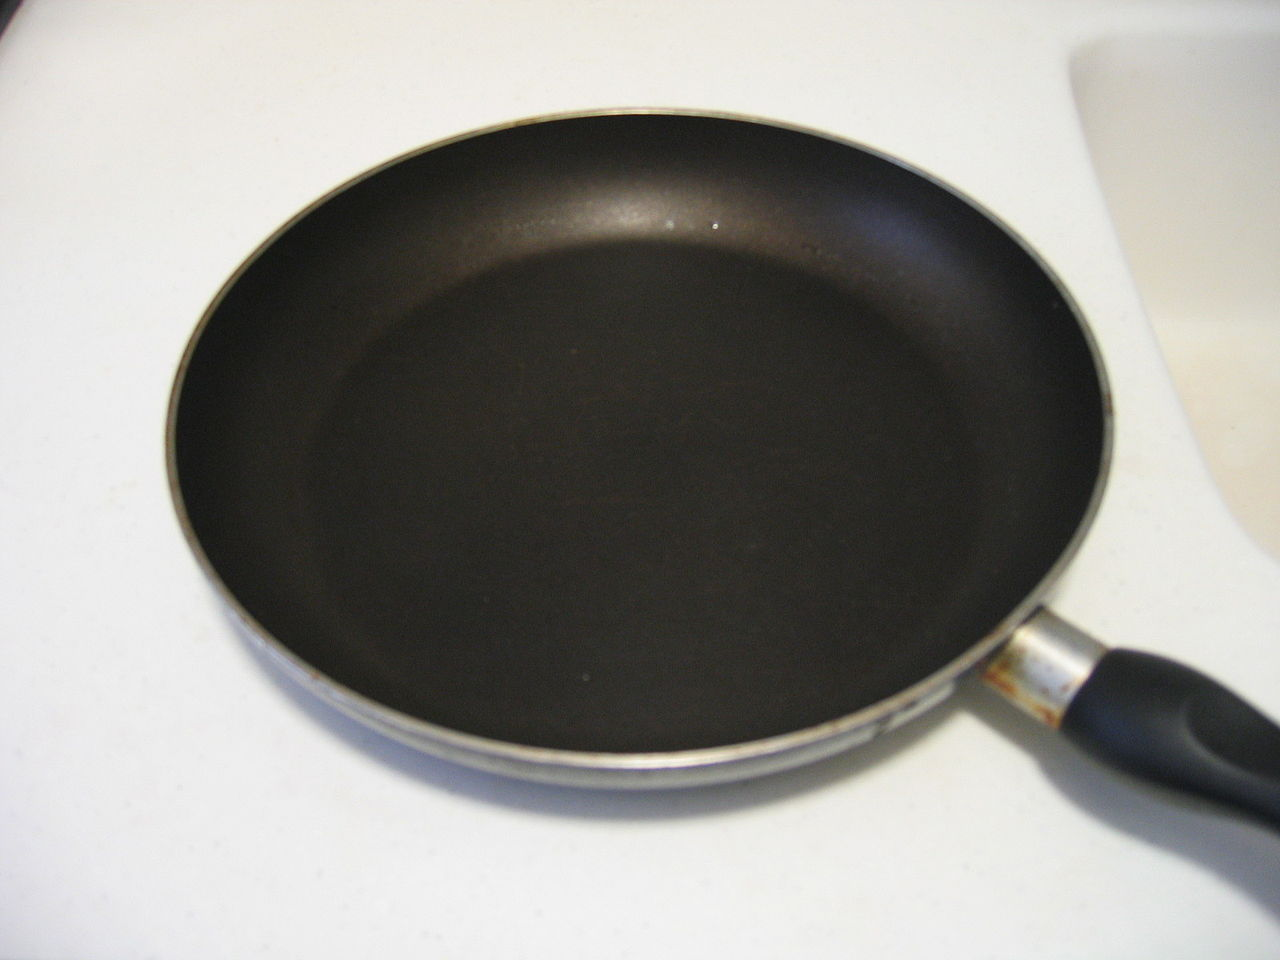 Iron Frying Pan Cooked Steak America S Test Kitchen